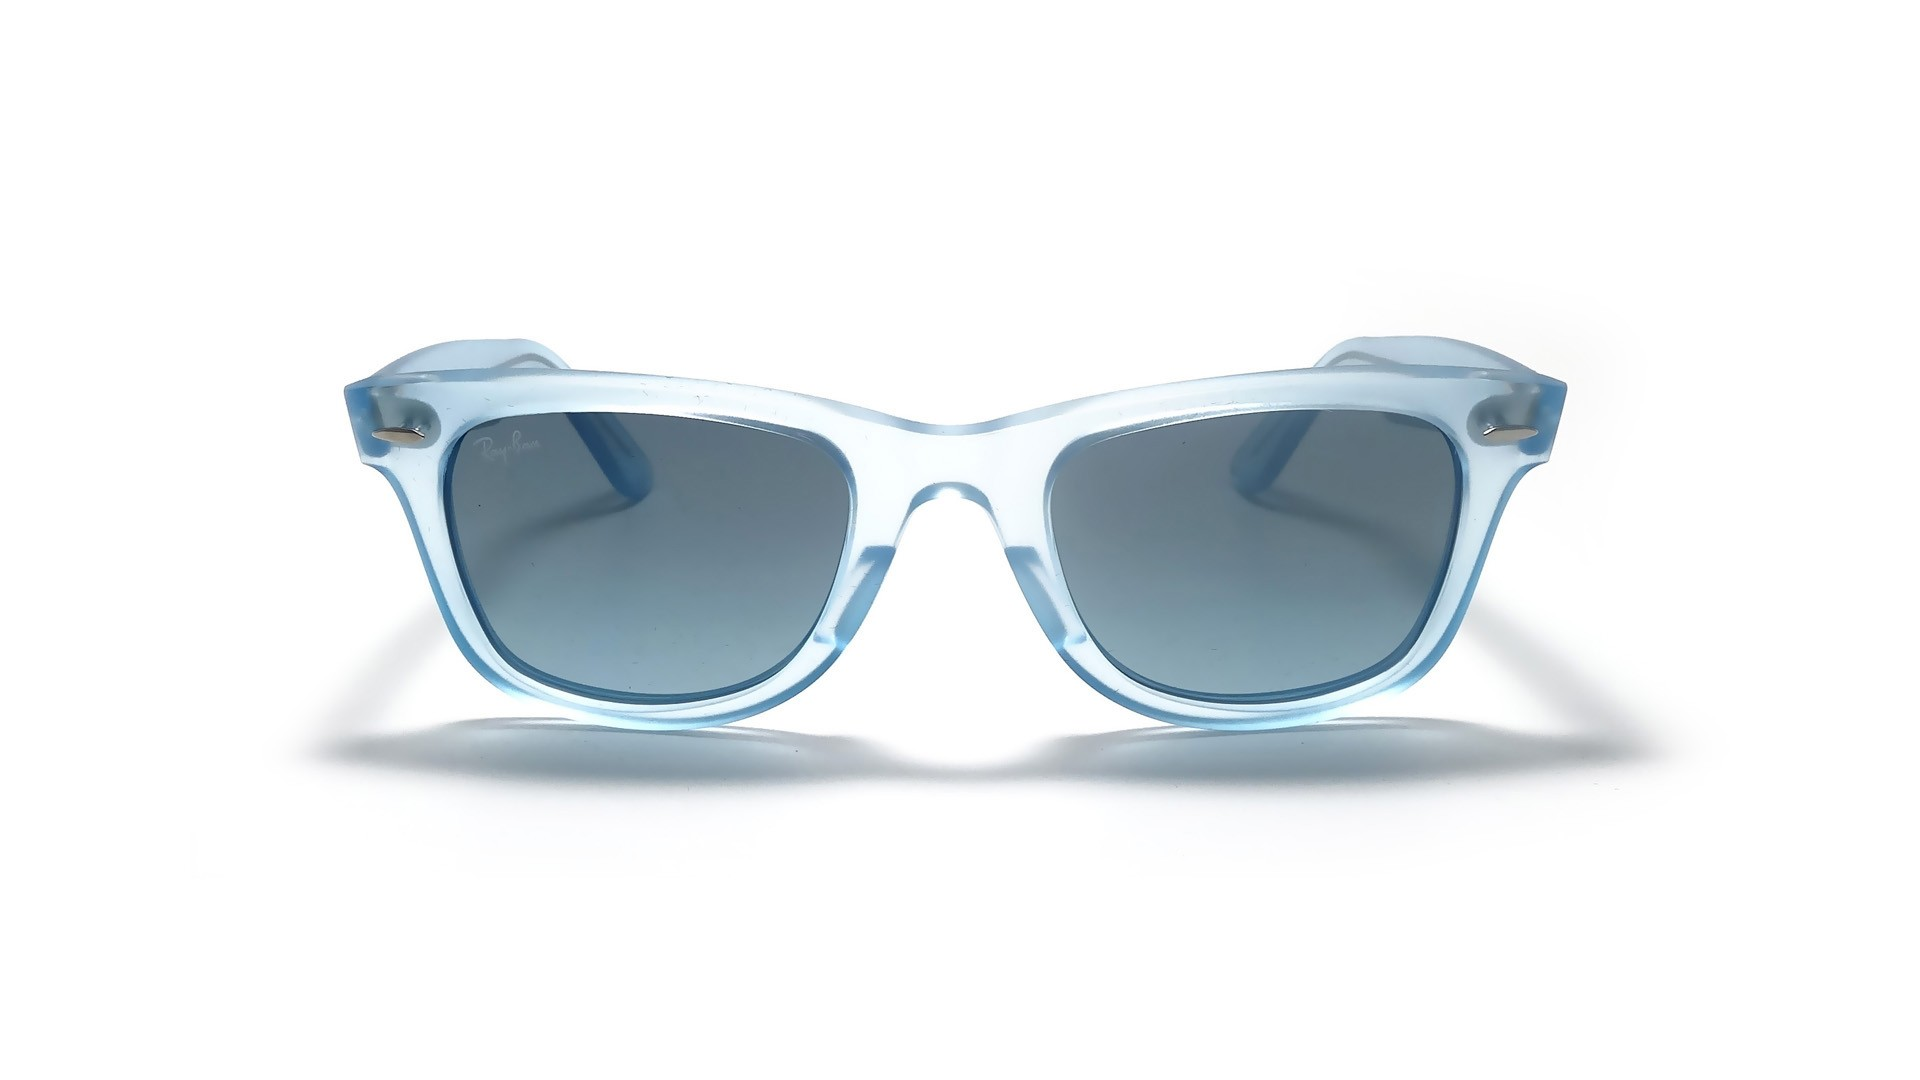 9ab2f081d5 Fake Ray Ban Clear Lens Sunglasses « Heritage Malta